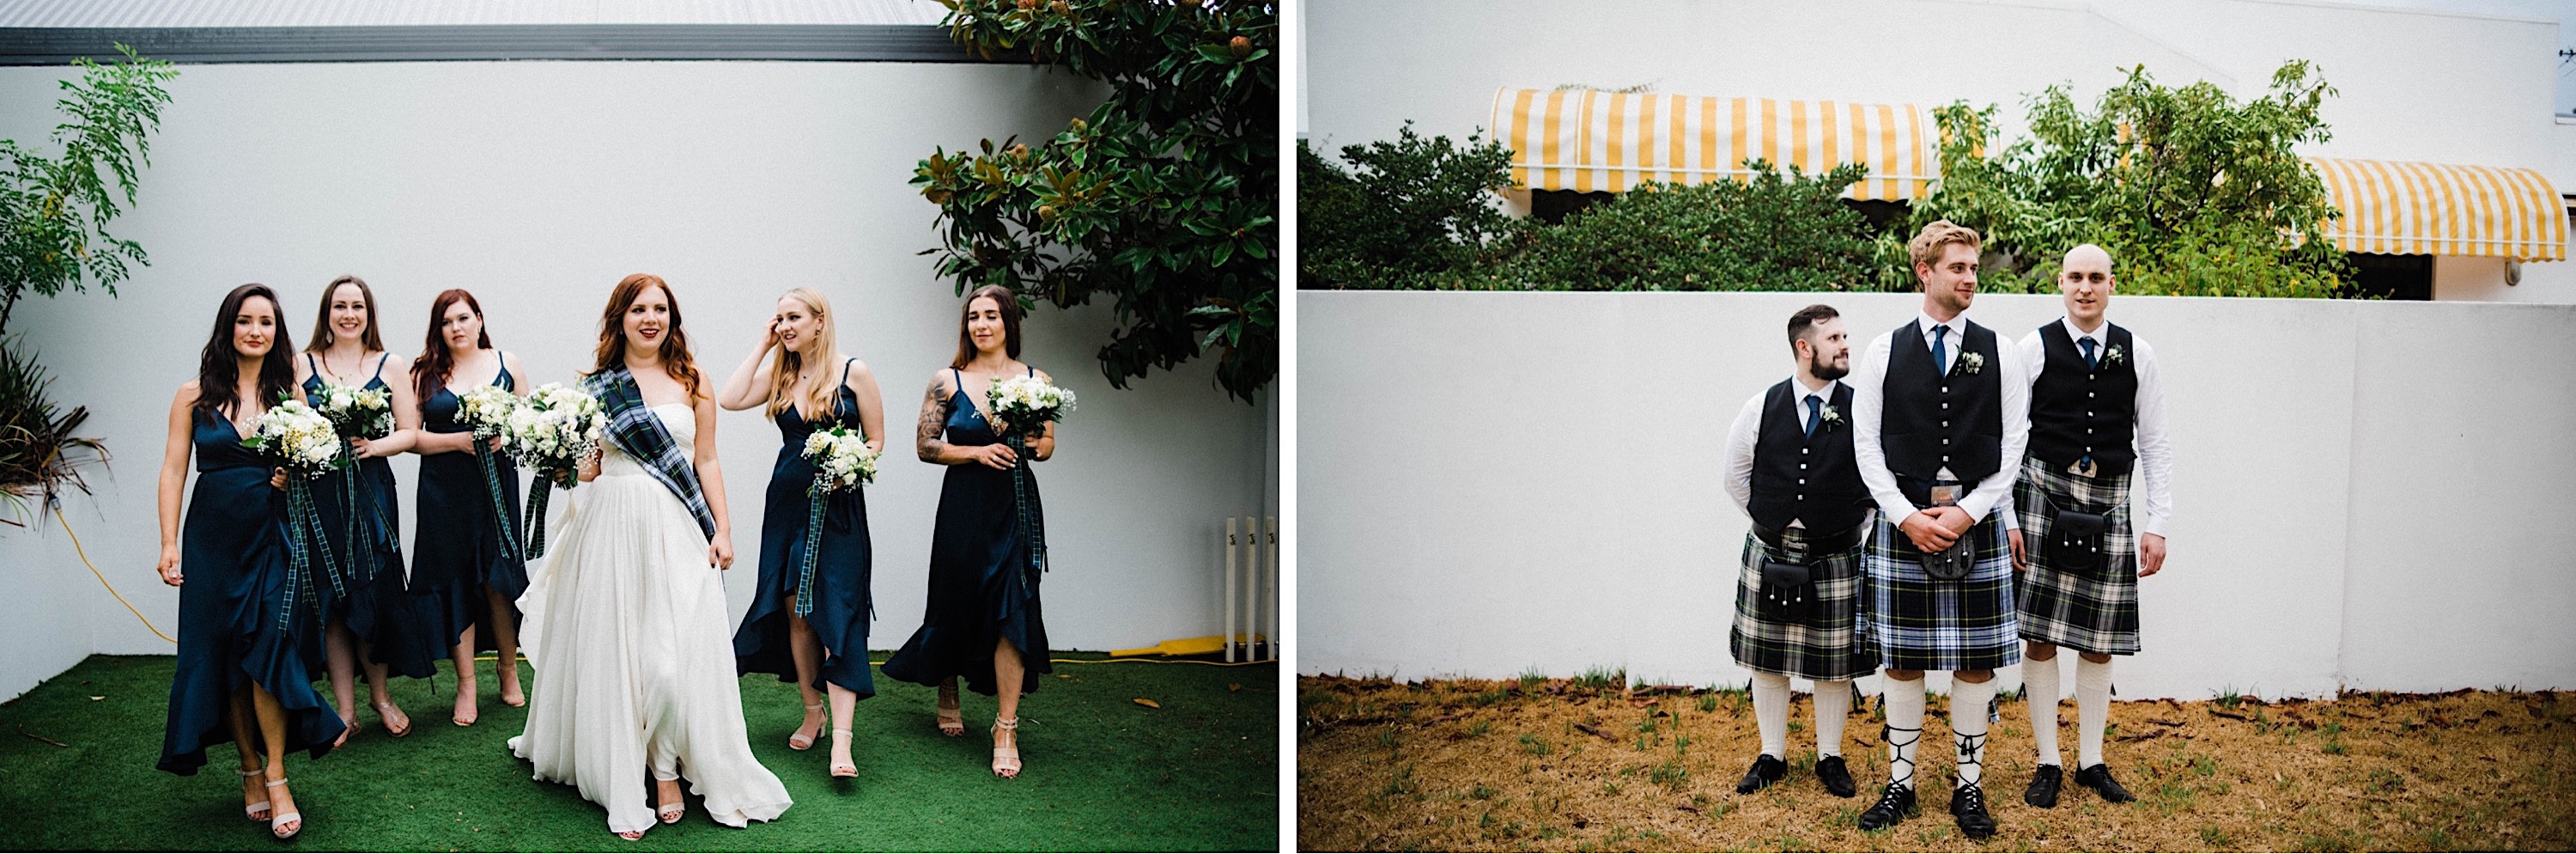 Two wedding portraits from a Sustainable Backyard Wedding. On the left, the bride walks alongside her bridesmaids and on the right, the groom stands with his groomsmen.